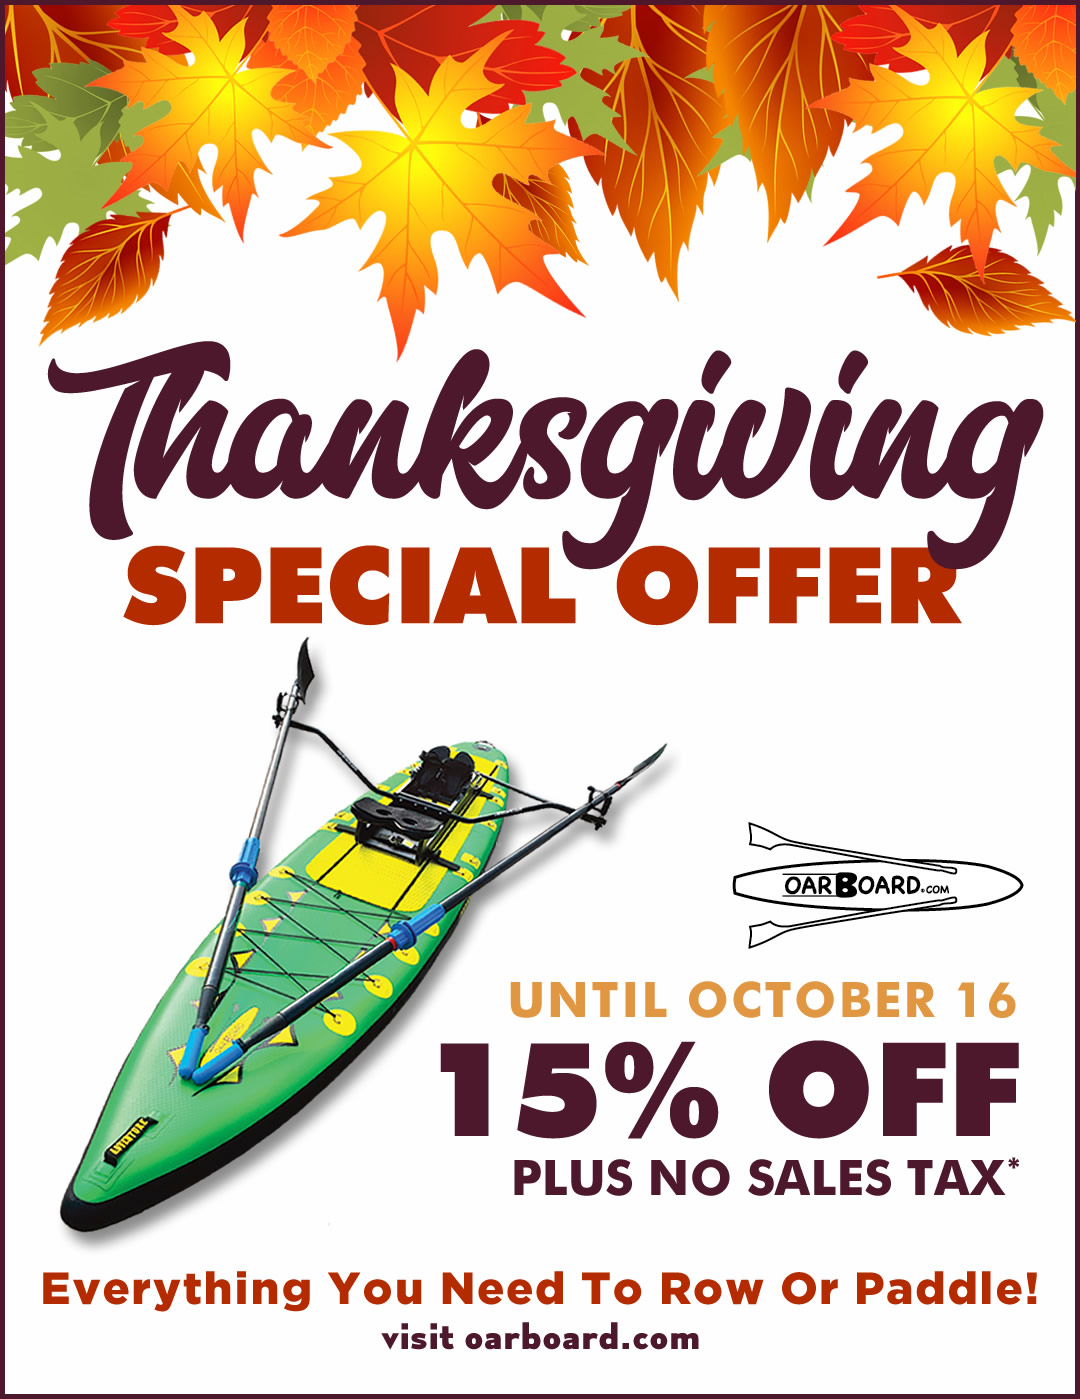 Oar-Board-Thanksgiving-Special-Offer-Stand-Up-Paddle-Board-Rower-1080-C2